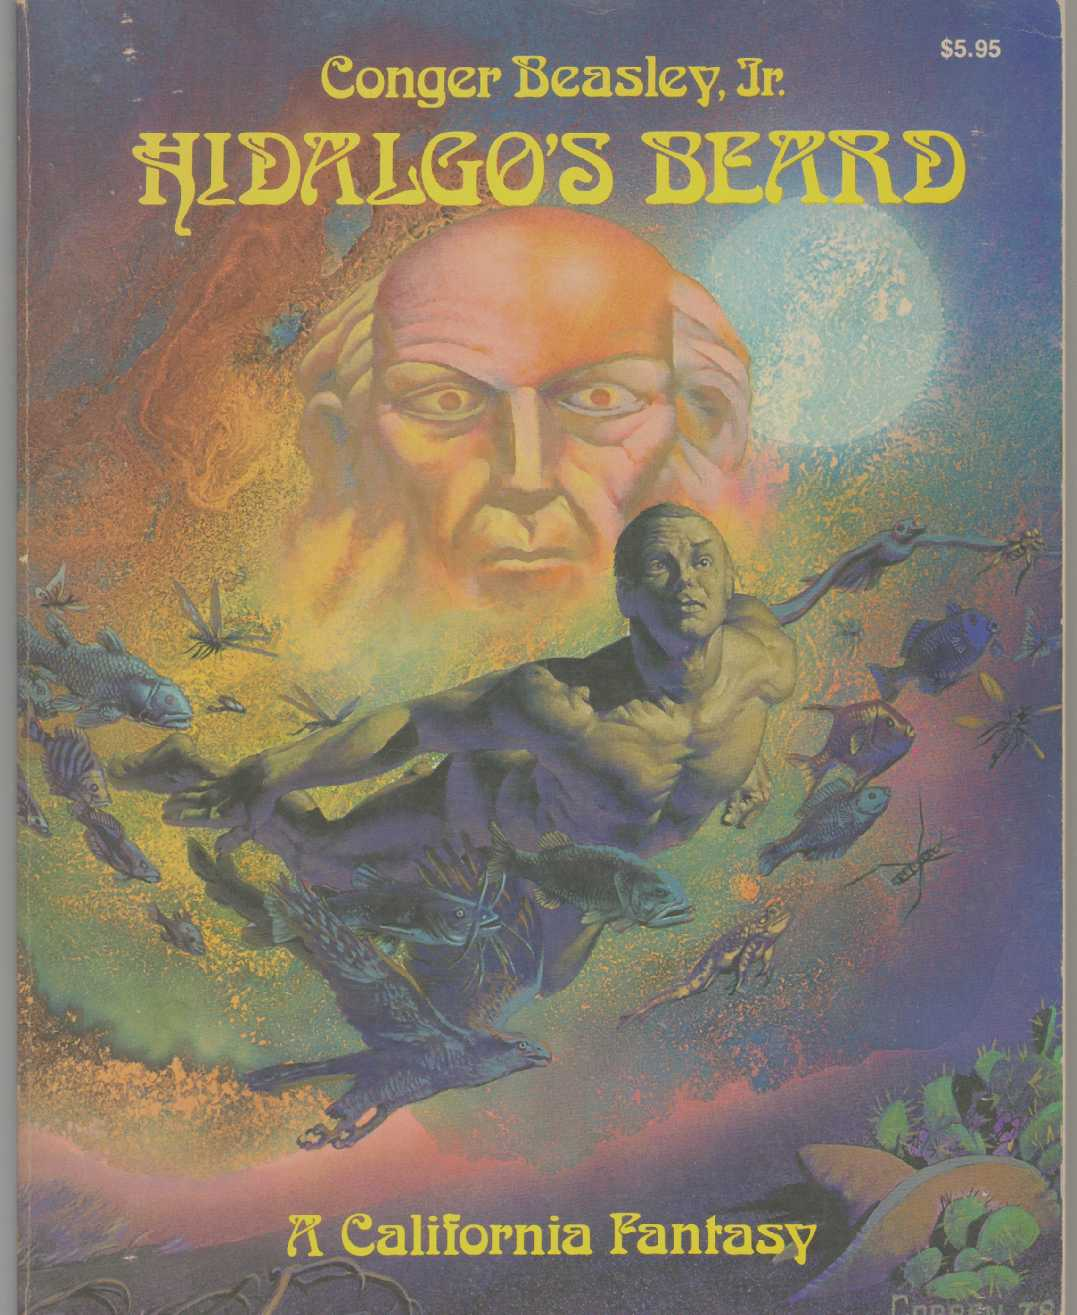 Image for HIDALGO'S BEARD A California Fantasy